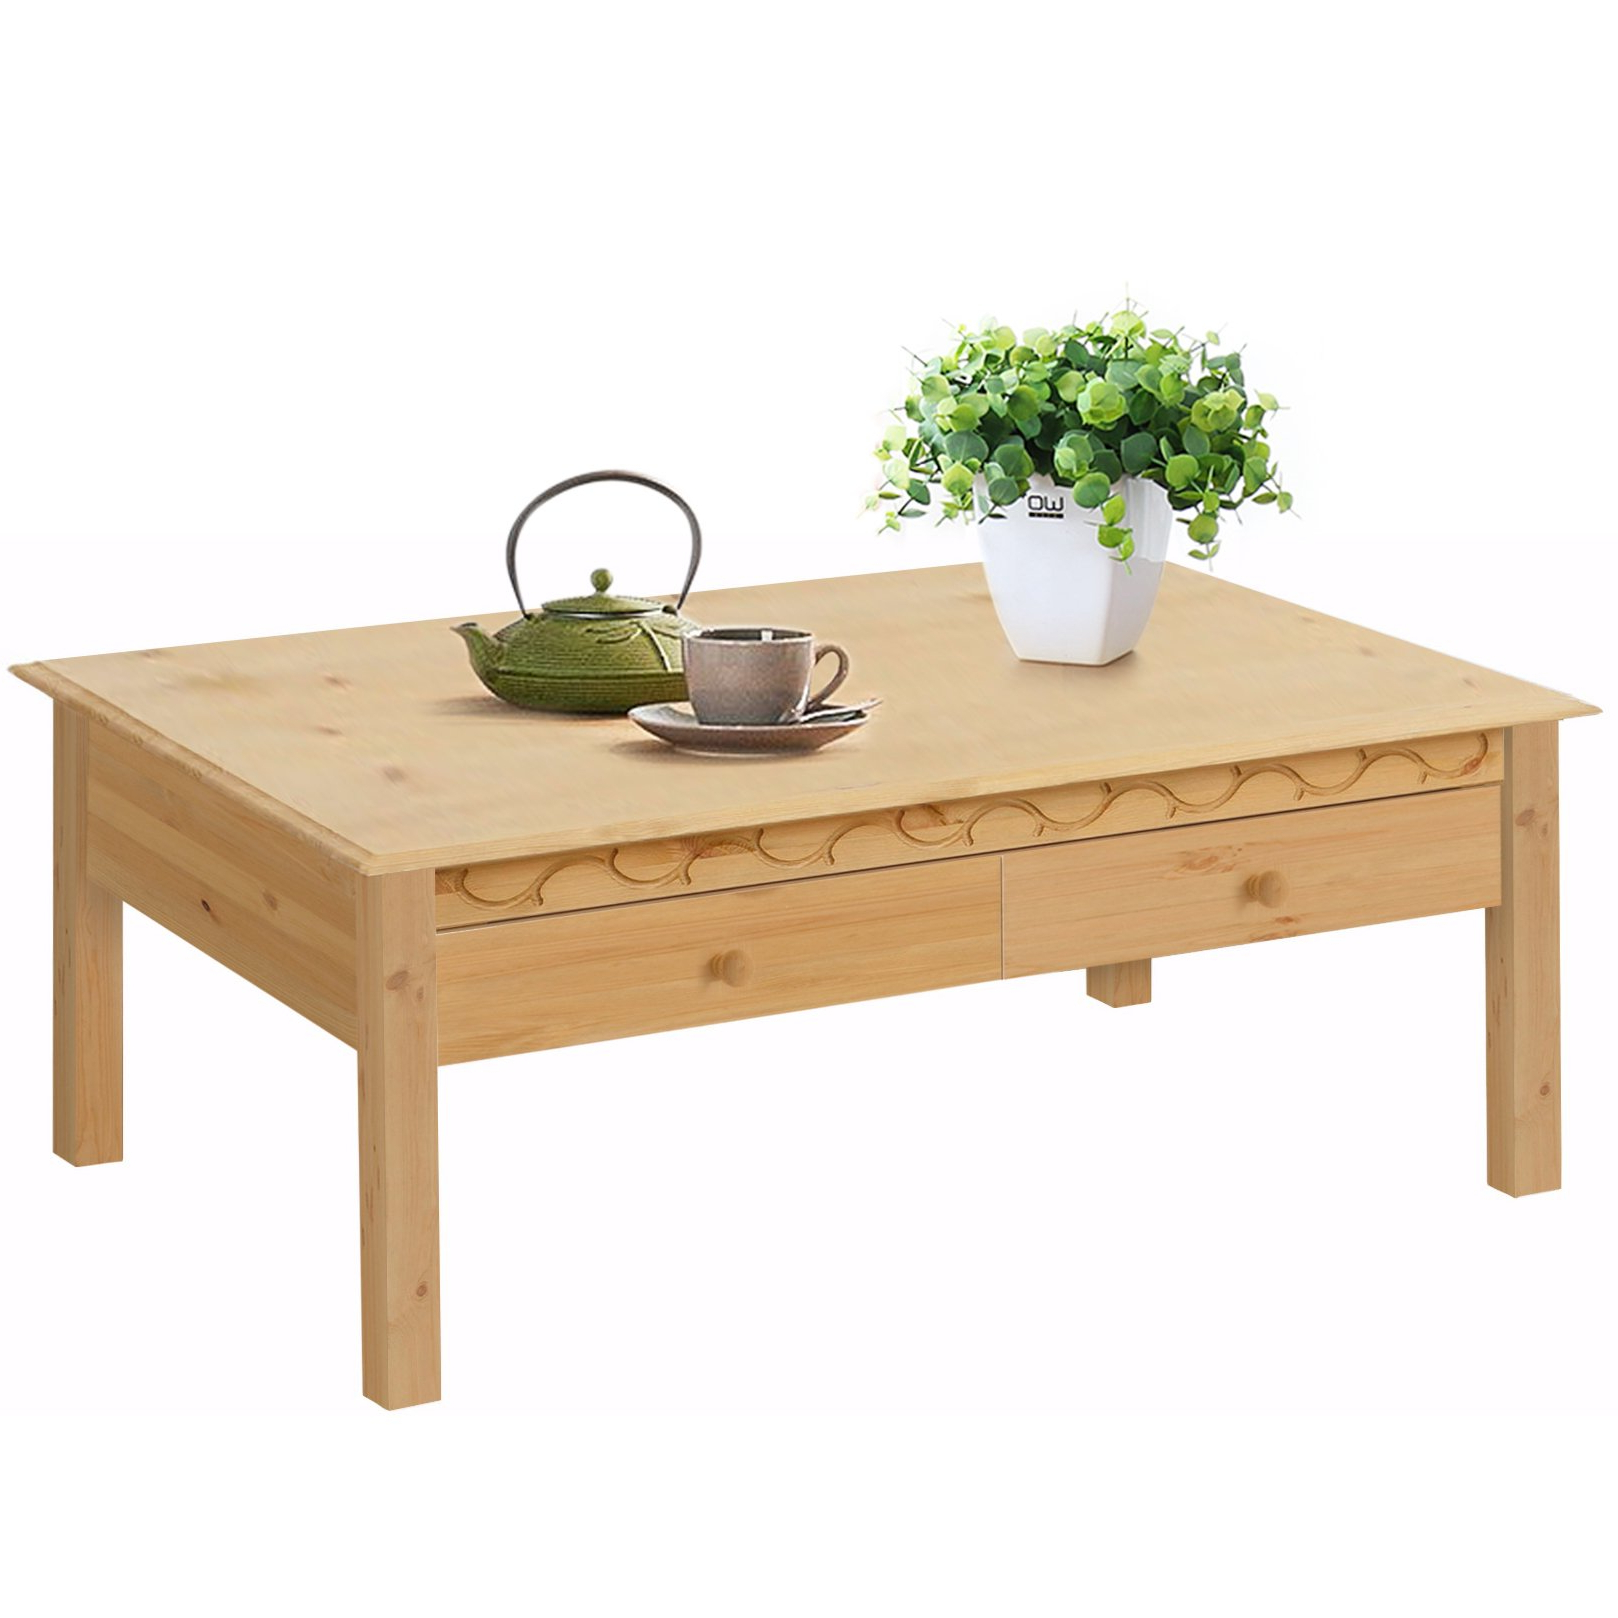 Natural Pine Coffee Tables With Most Recent Lando 1 Drawer Coffee Table, Solid Pine, Natural – Free Shipping (View 14 of 20)